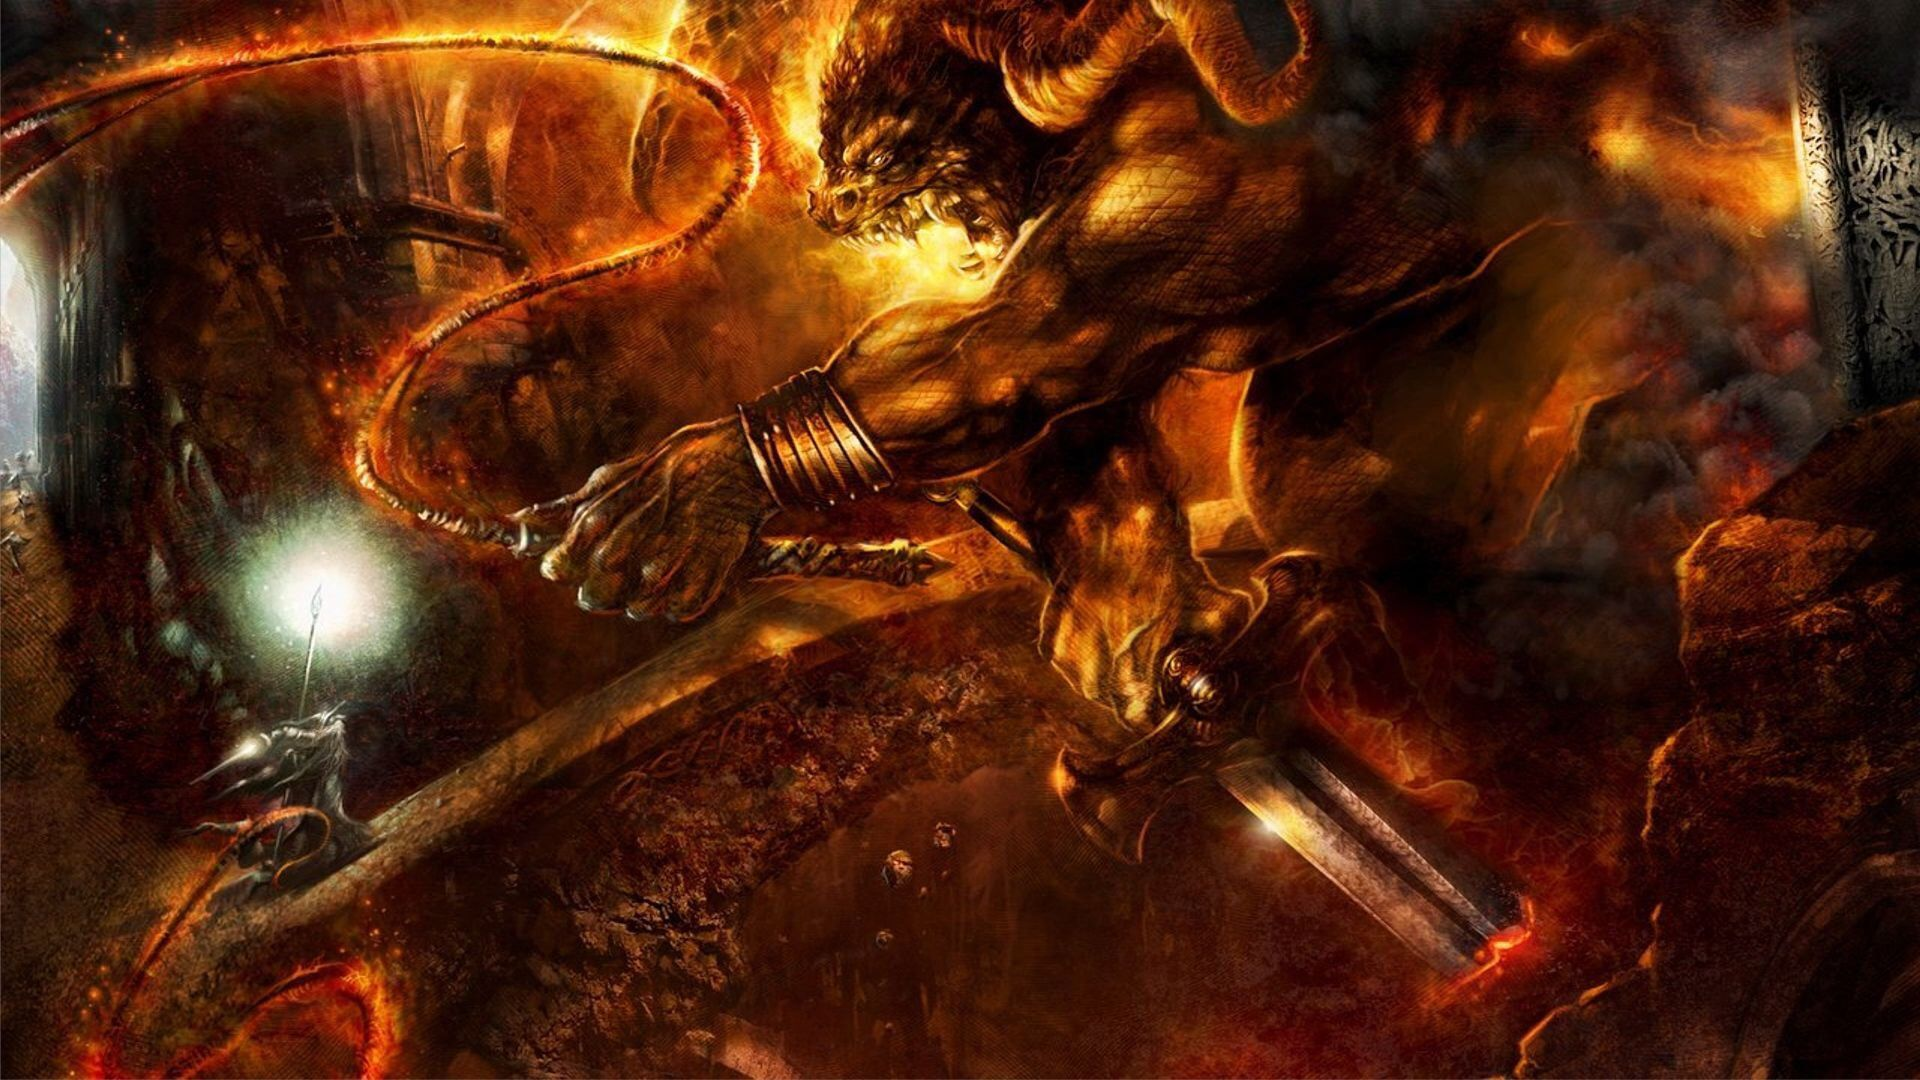 Immagine di https://www.walldevil.com/wallpapers/a81/the-lord-of-the-rings-the-fellowship-of-the-ring-gandalf-balrog-lotr.jpg.